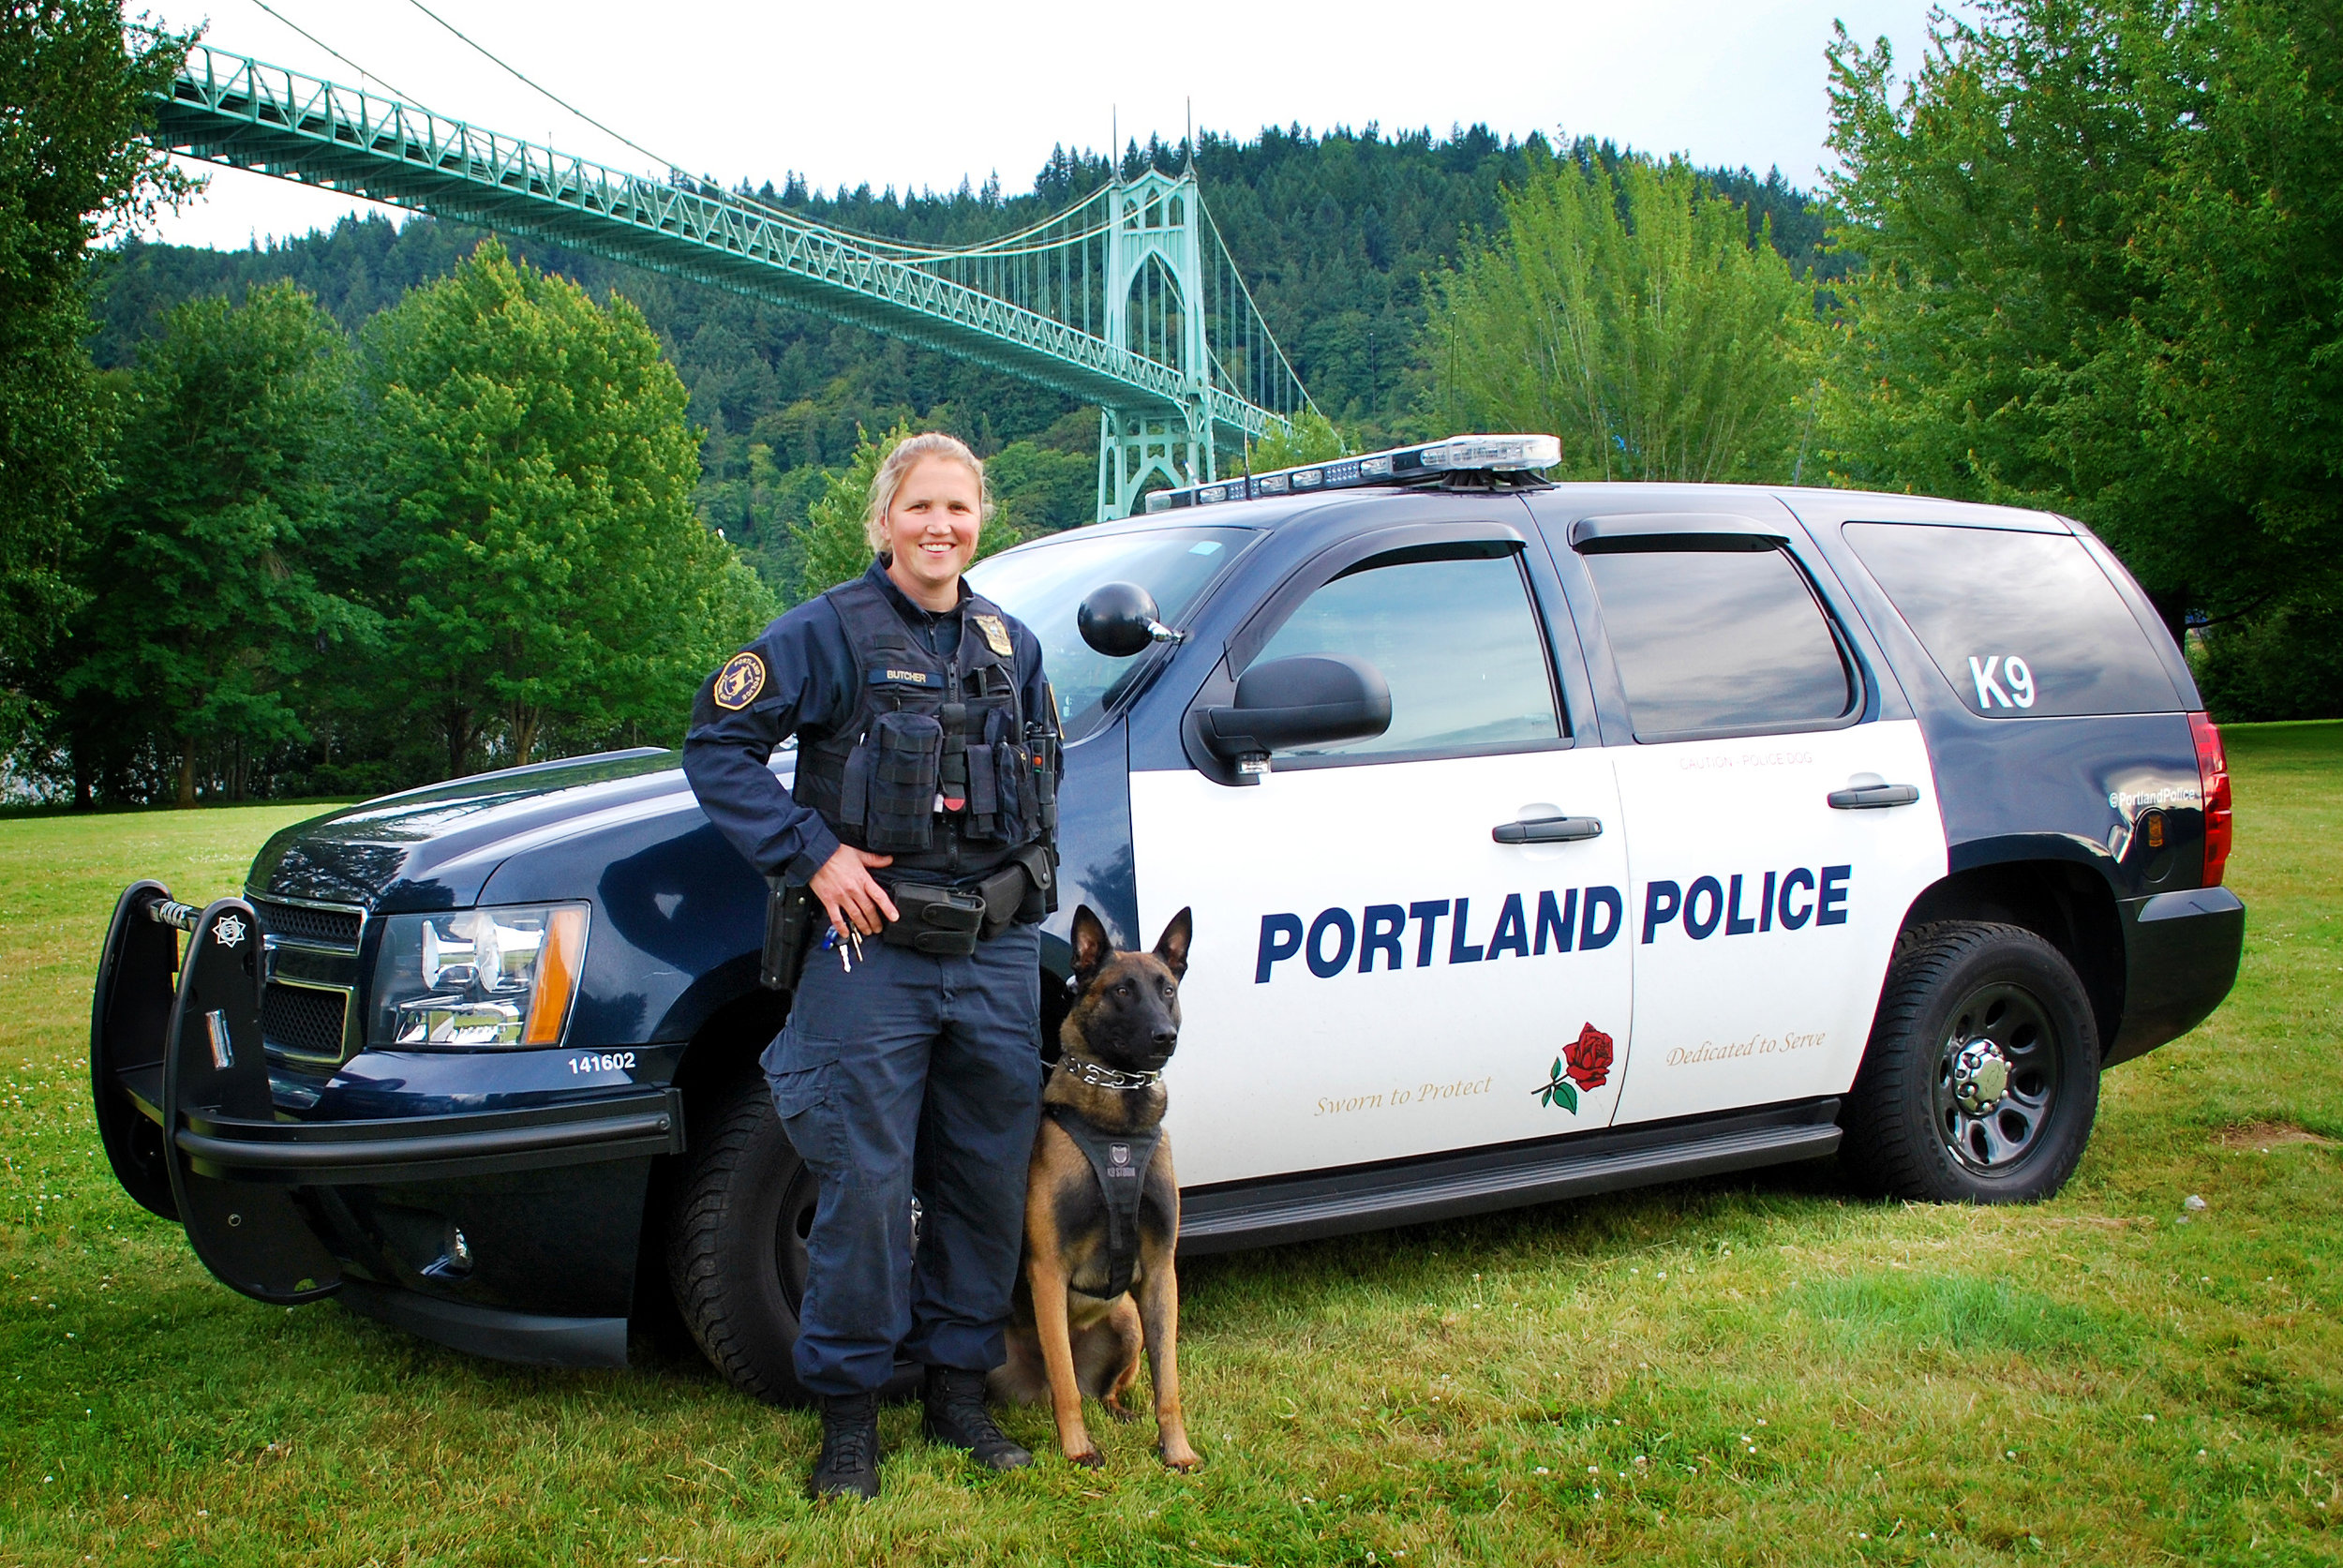 Portland Police use Frontline test for their written exam